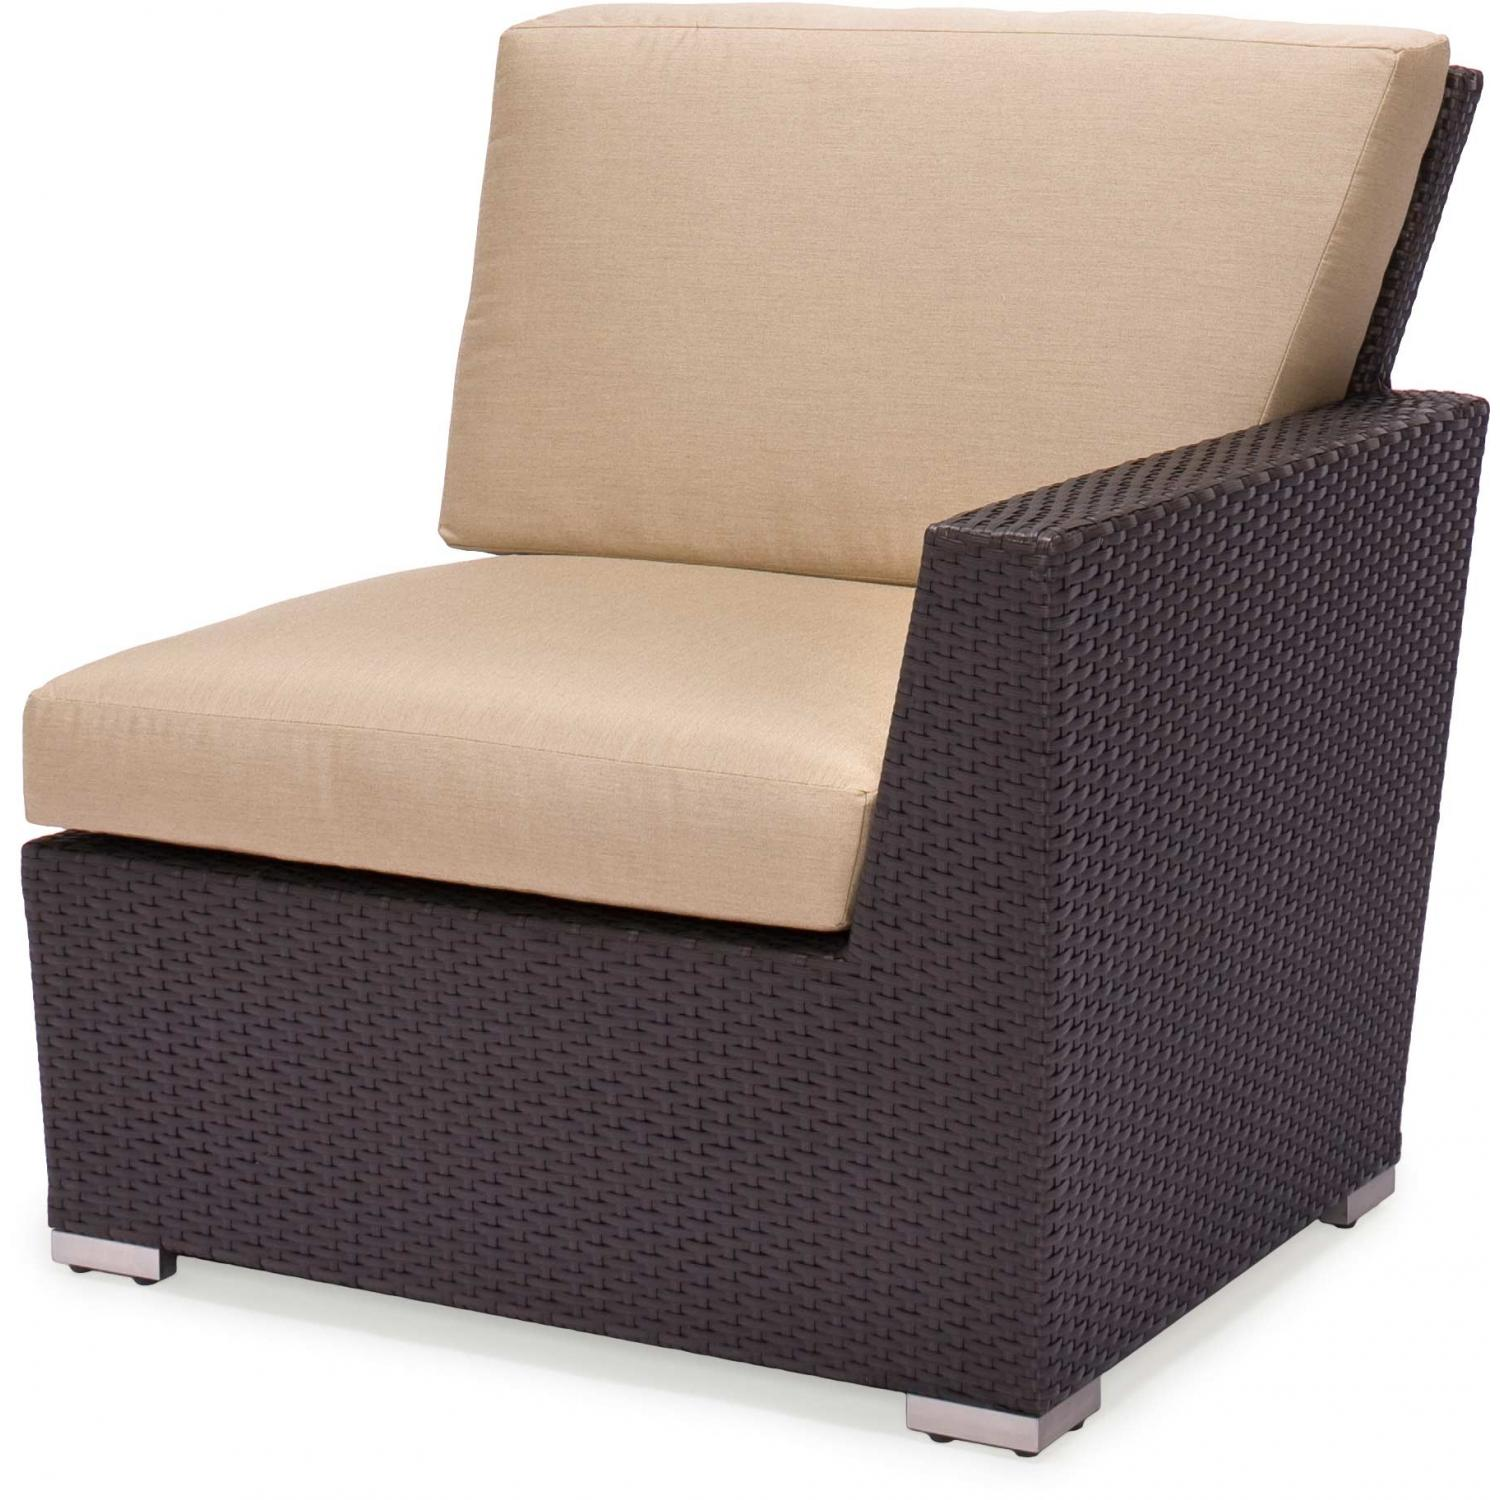 Caluco Maxime Wicker Sectional - Left Arm